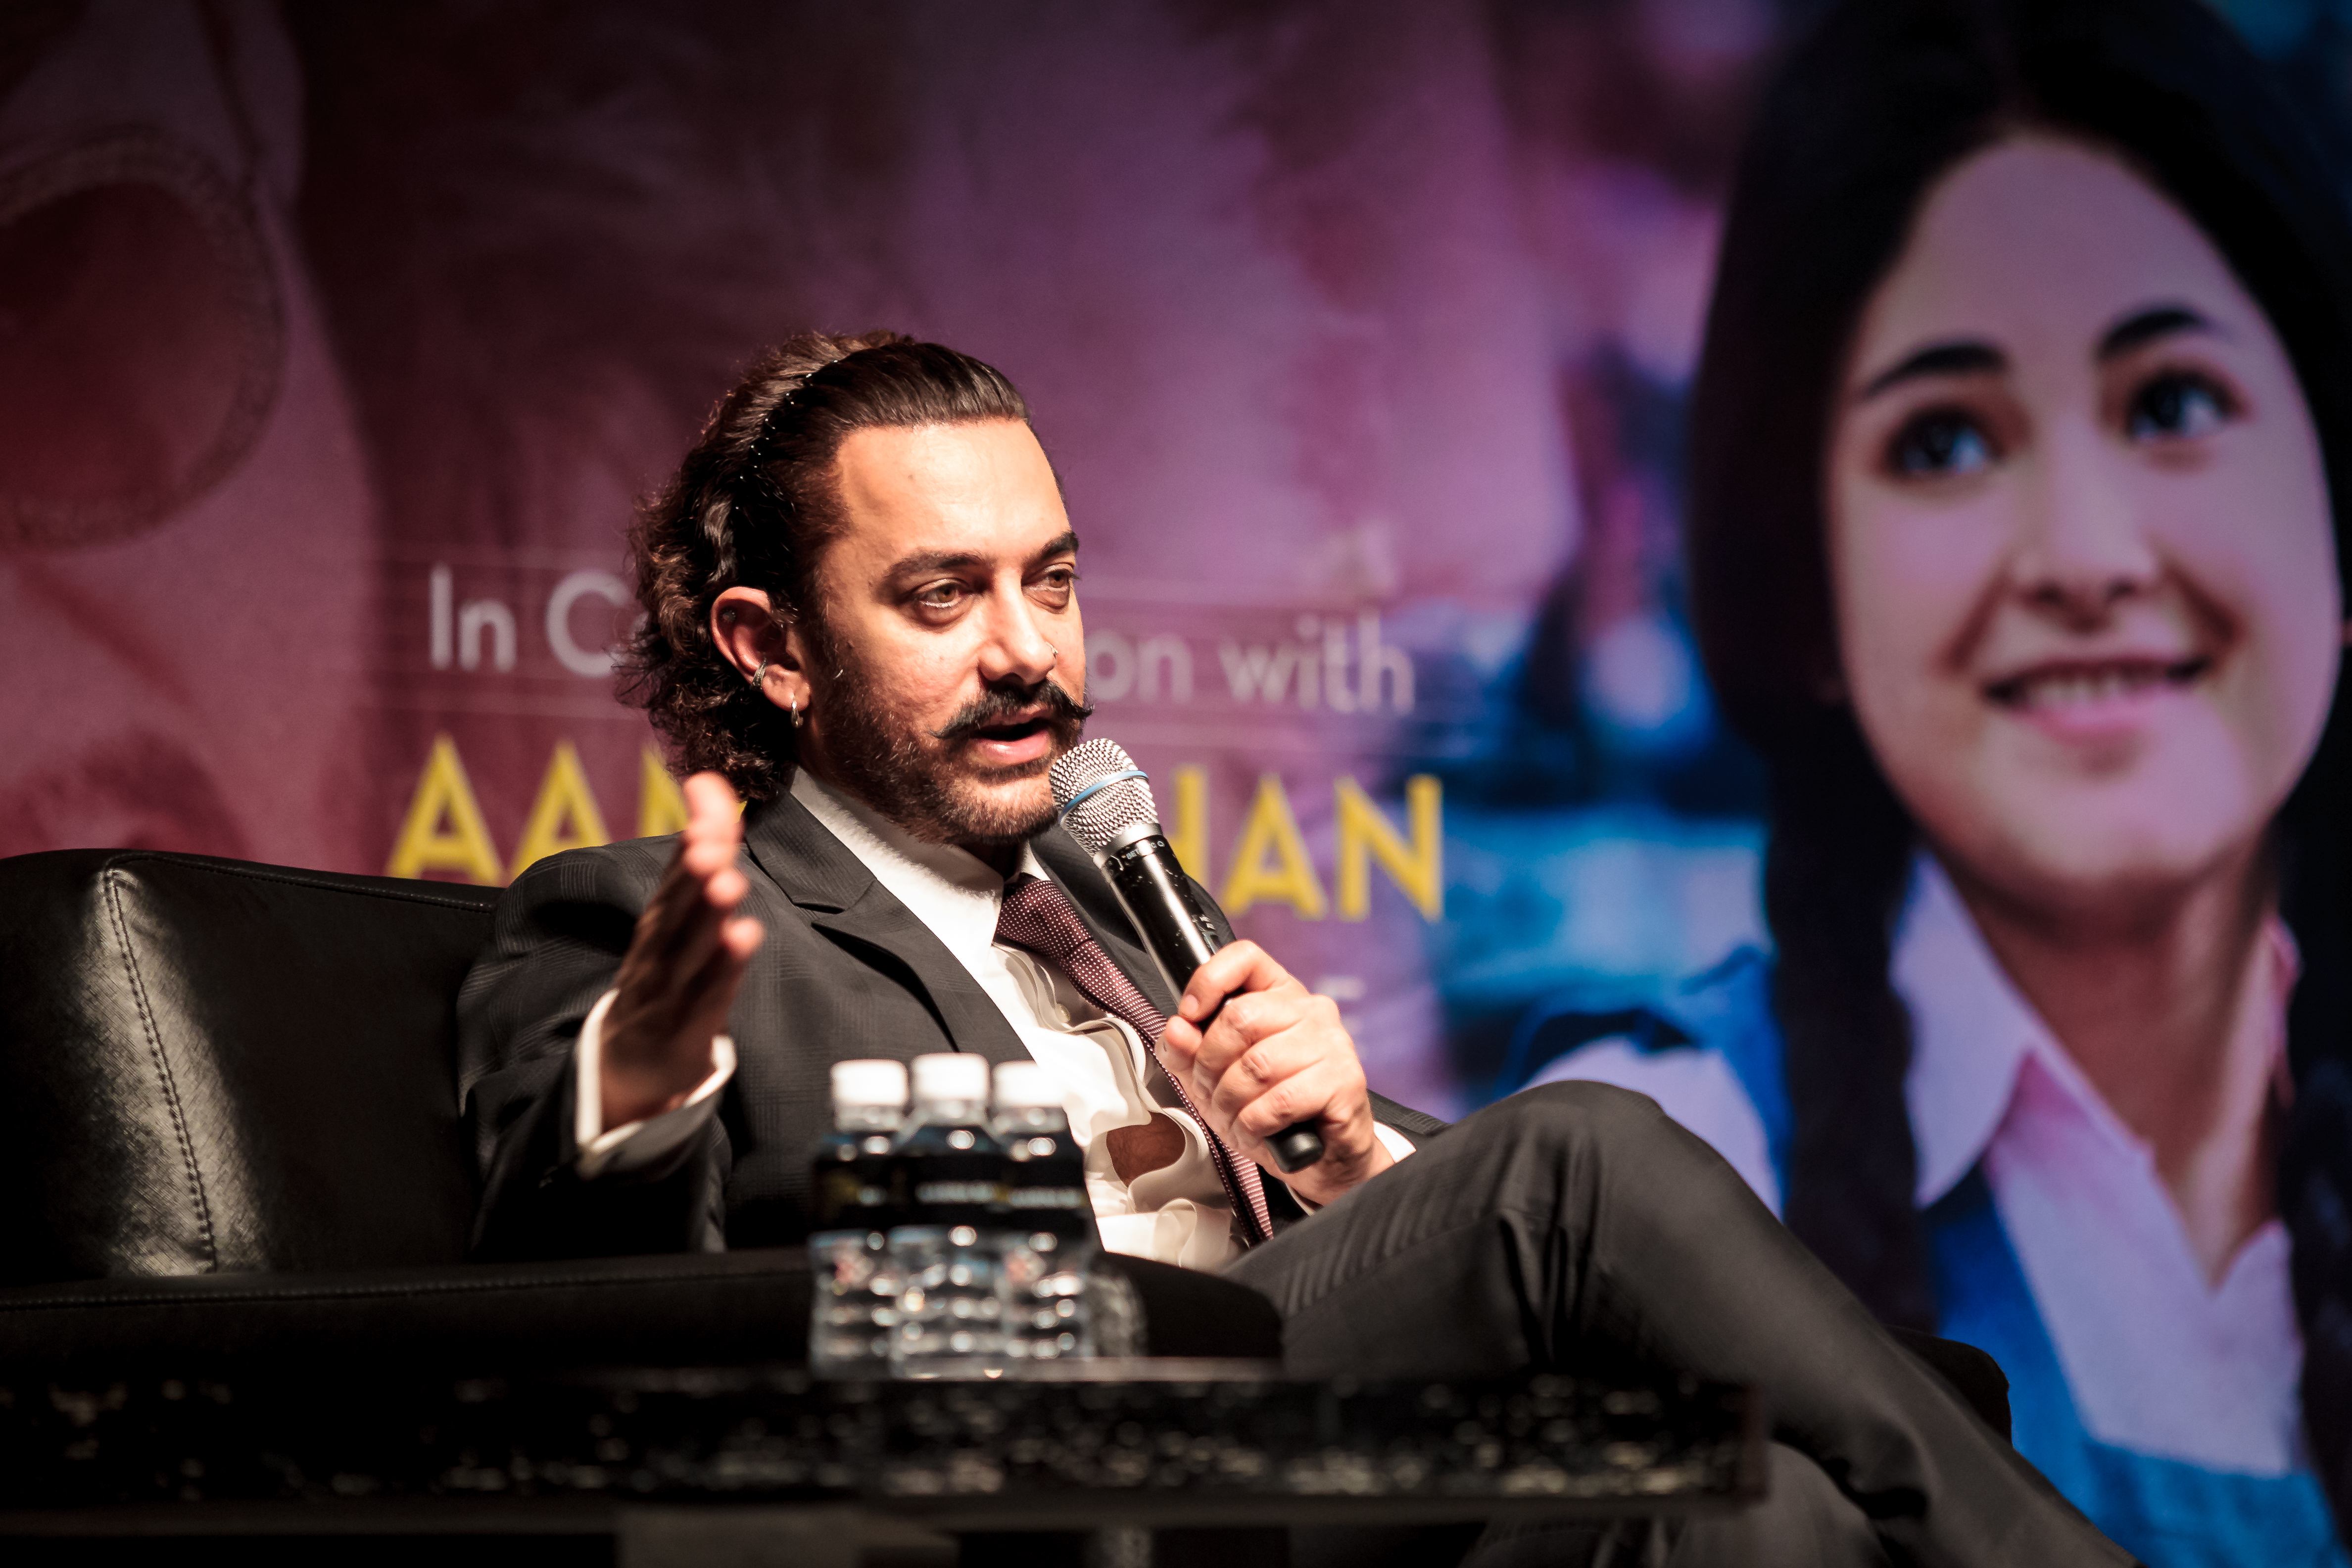 Aamir answered questions posed by the audience with refreshing honesty.